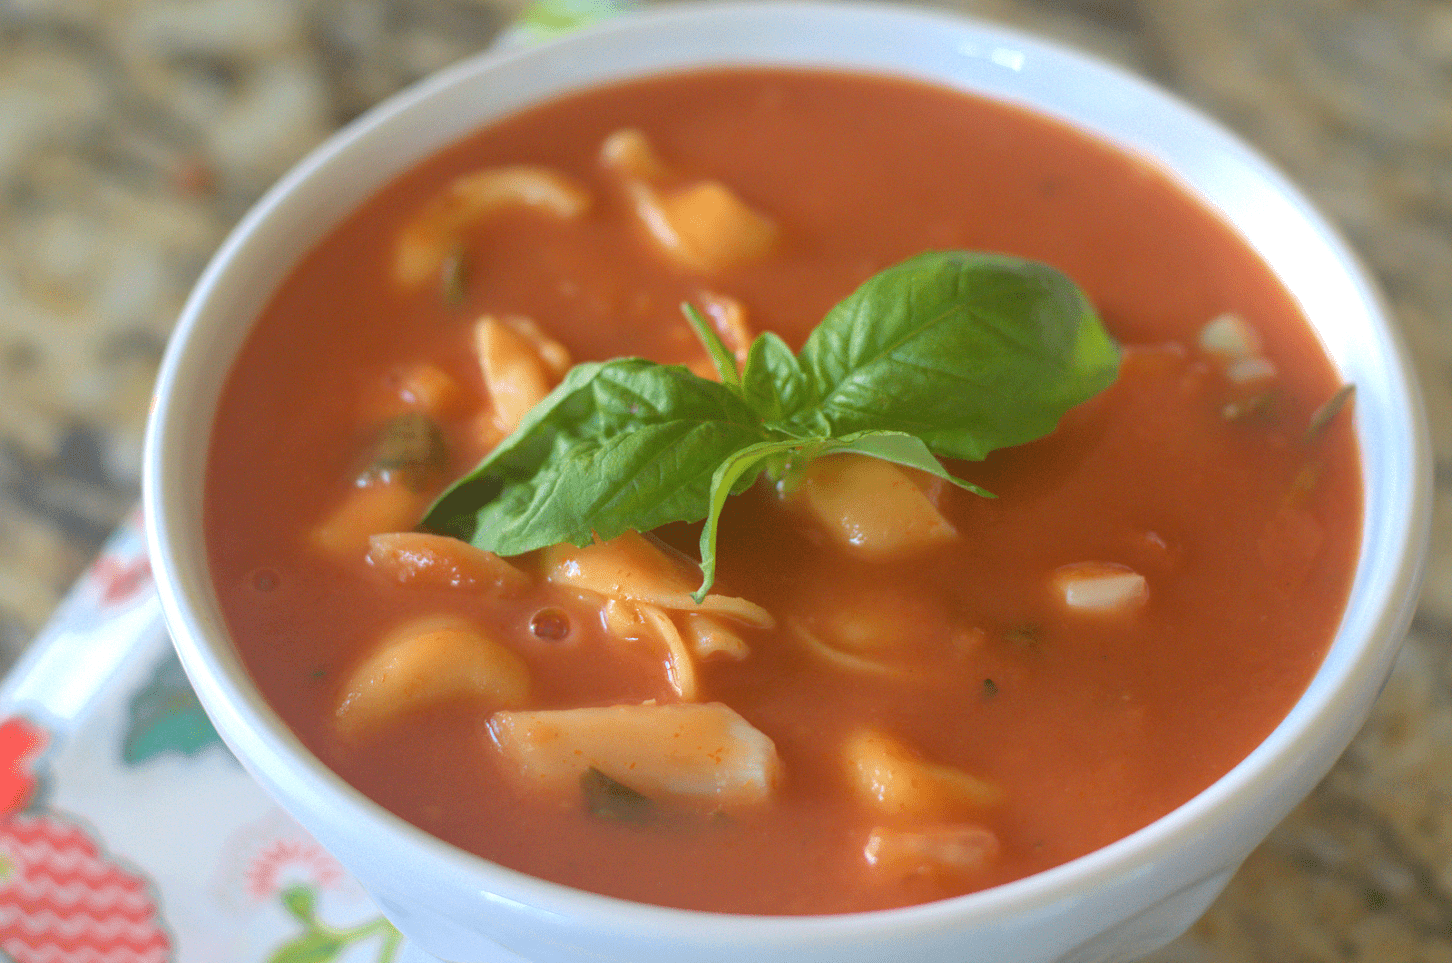 This yummy slow cooker creamy tomato basil tortellini soup is sure to be a hit with everyone in your family.